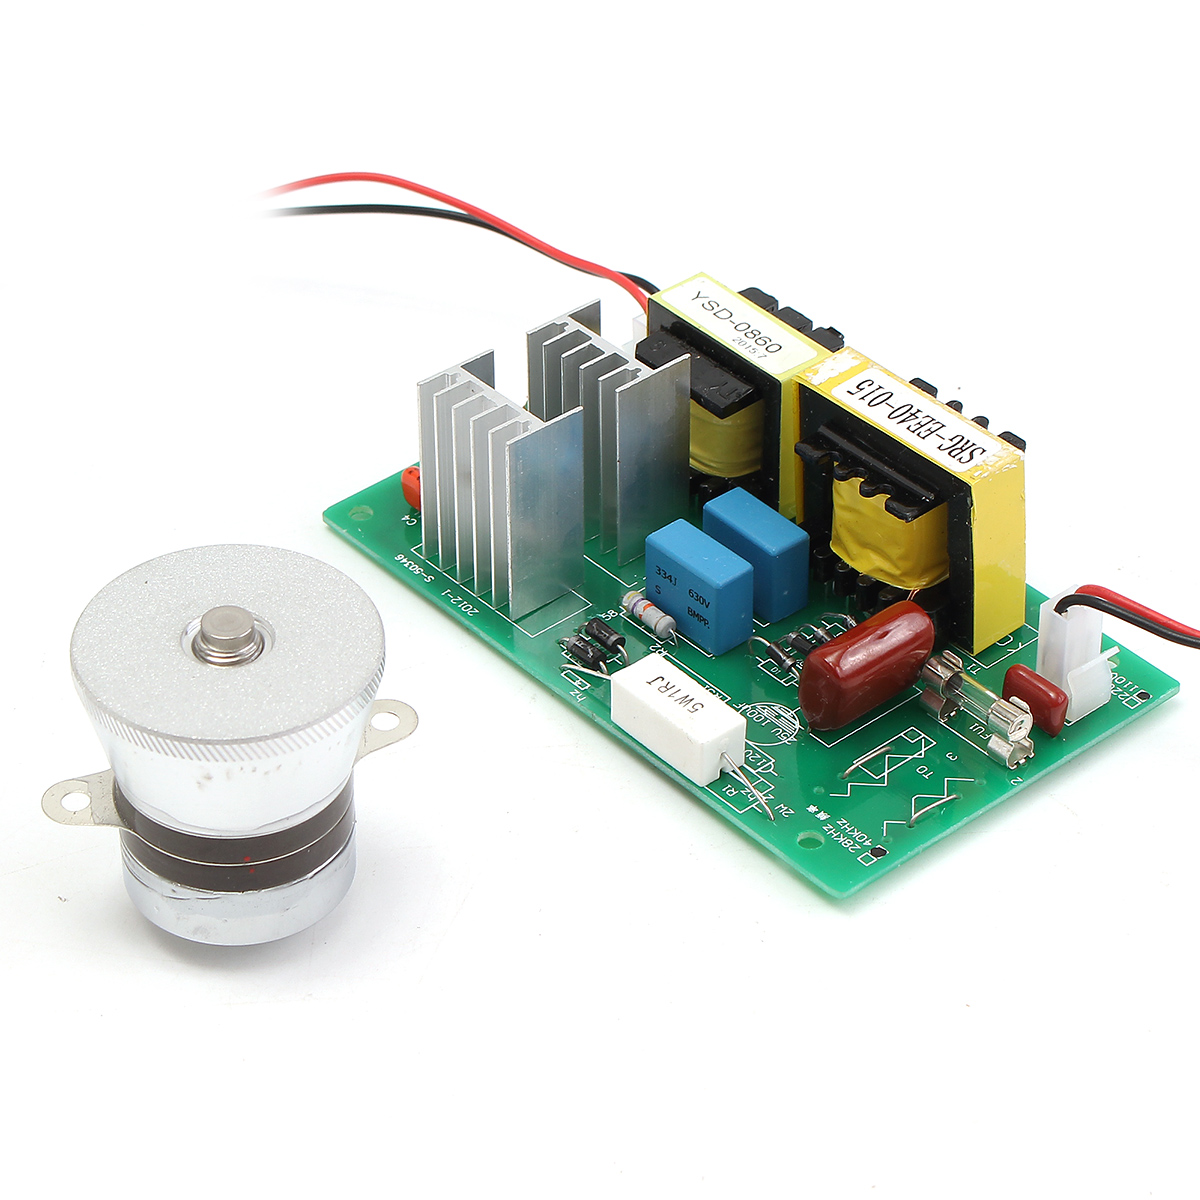 Ultrasonic Cleaning Transducer Cleaner 110VAC 50W 40KHz Power Driver Board Cleaning Transducer Ultrasonic Cleaner Parts цена и фото